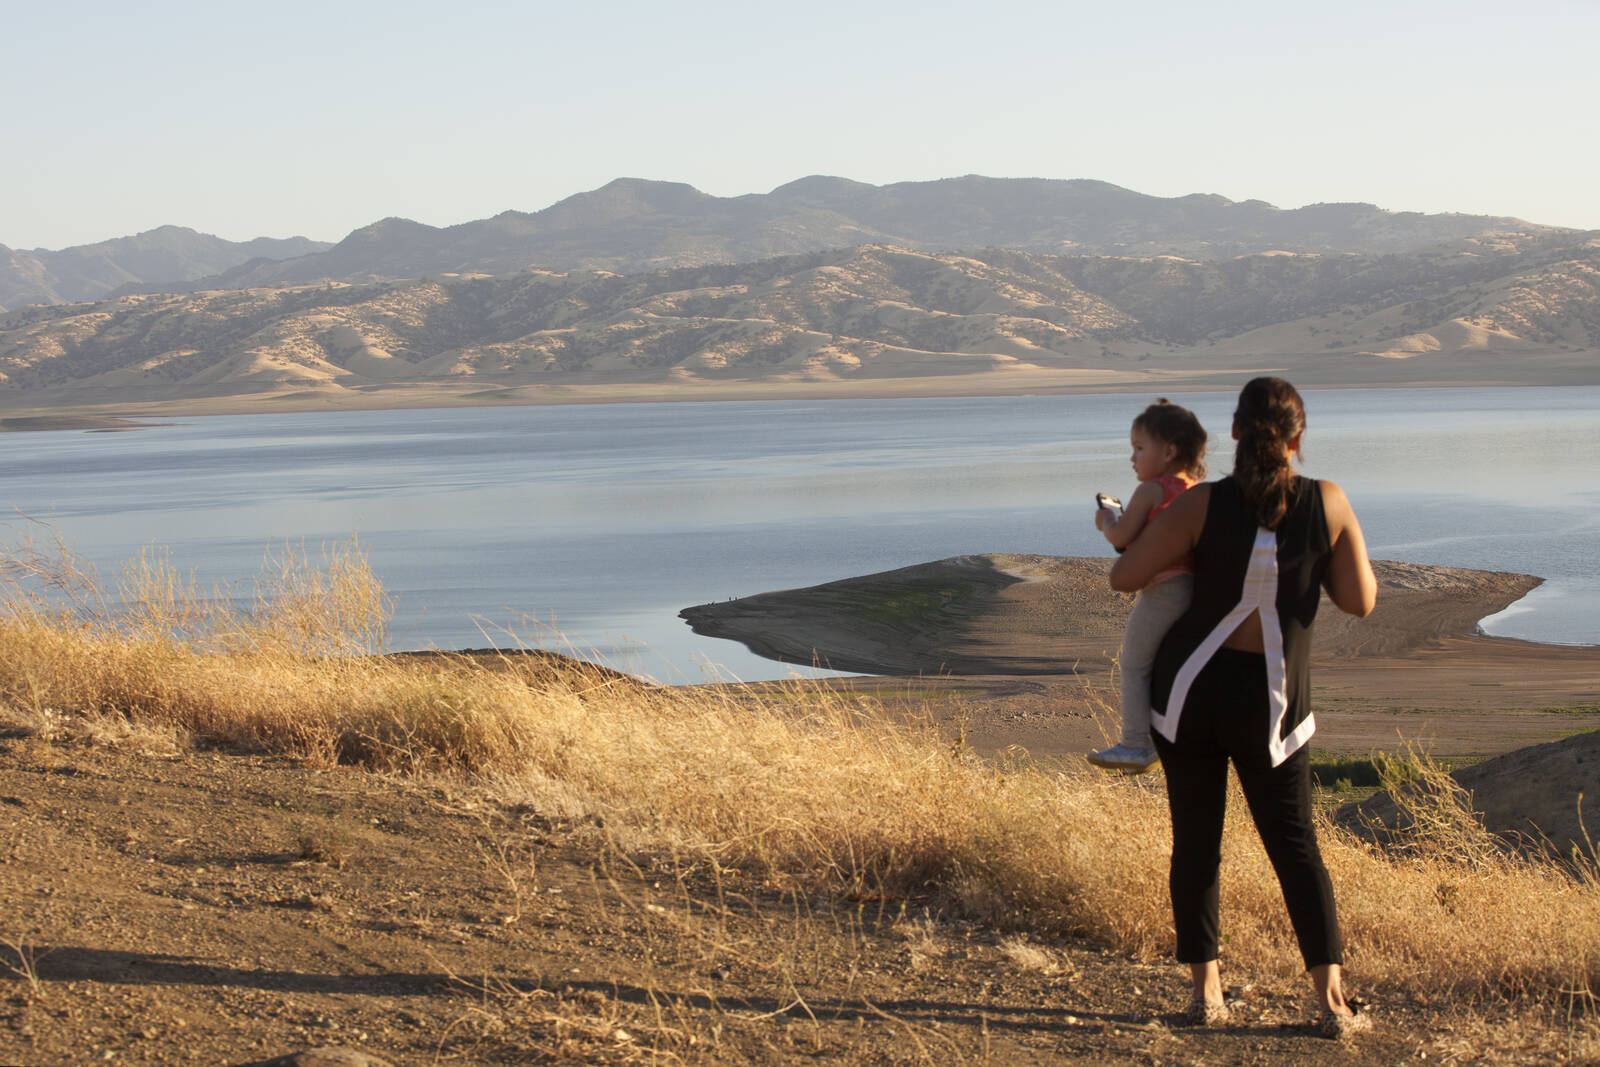 The San Luis Reservoir receives water from the San Joaquin-Sacramento River Delta. The water is pumped uphill into the reservoir and released to continue downstream along the California Aqueduct for farm irrigation and other uses. Credit: Melanie Stetson